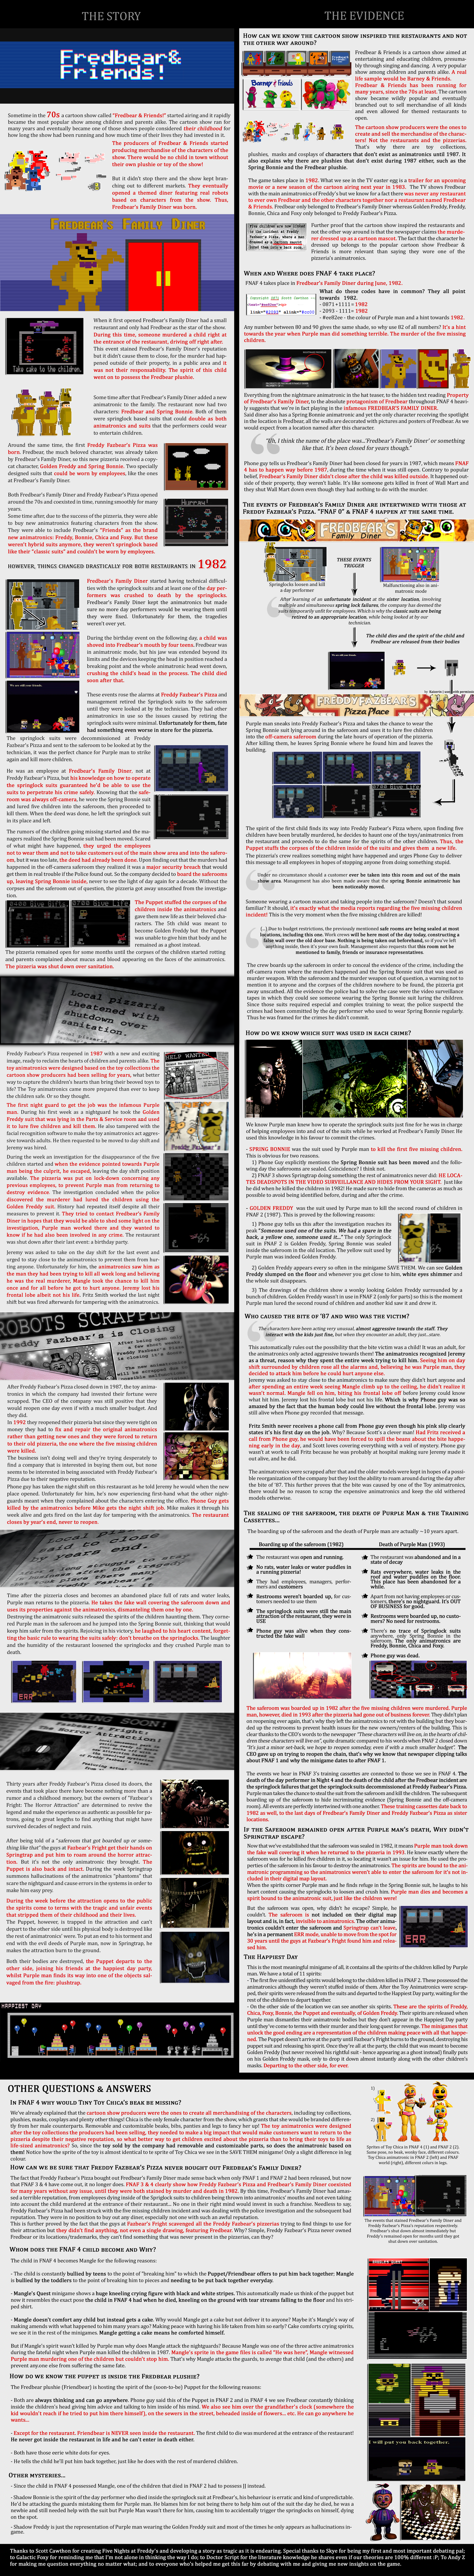 Five Nights at Freddy's - My complete theory by rydi1689 on DeviantArt